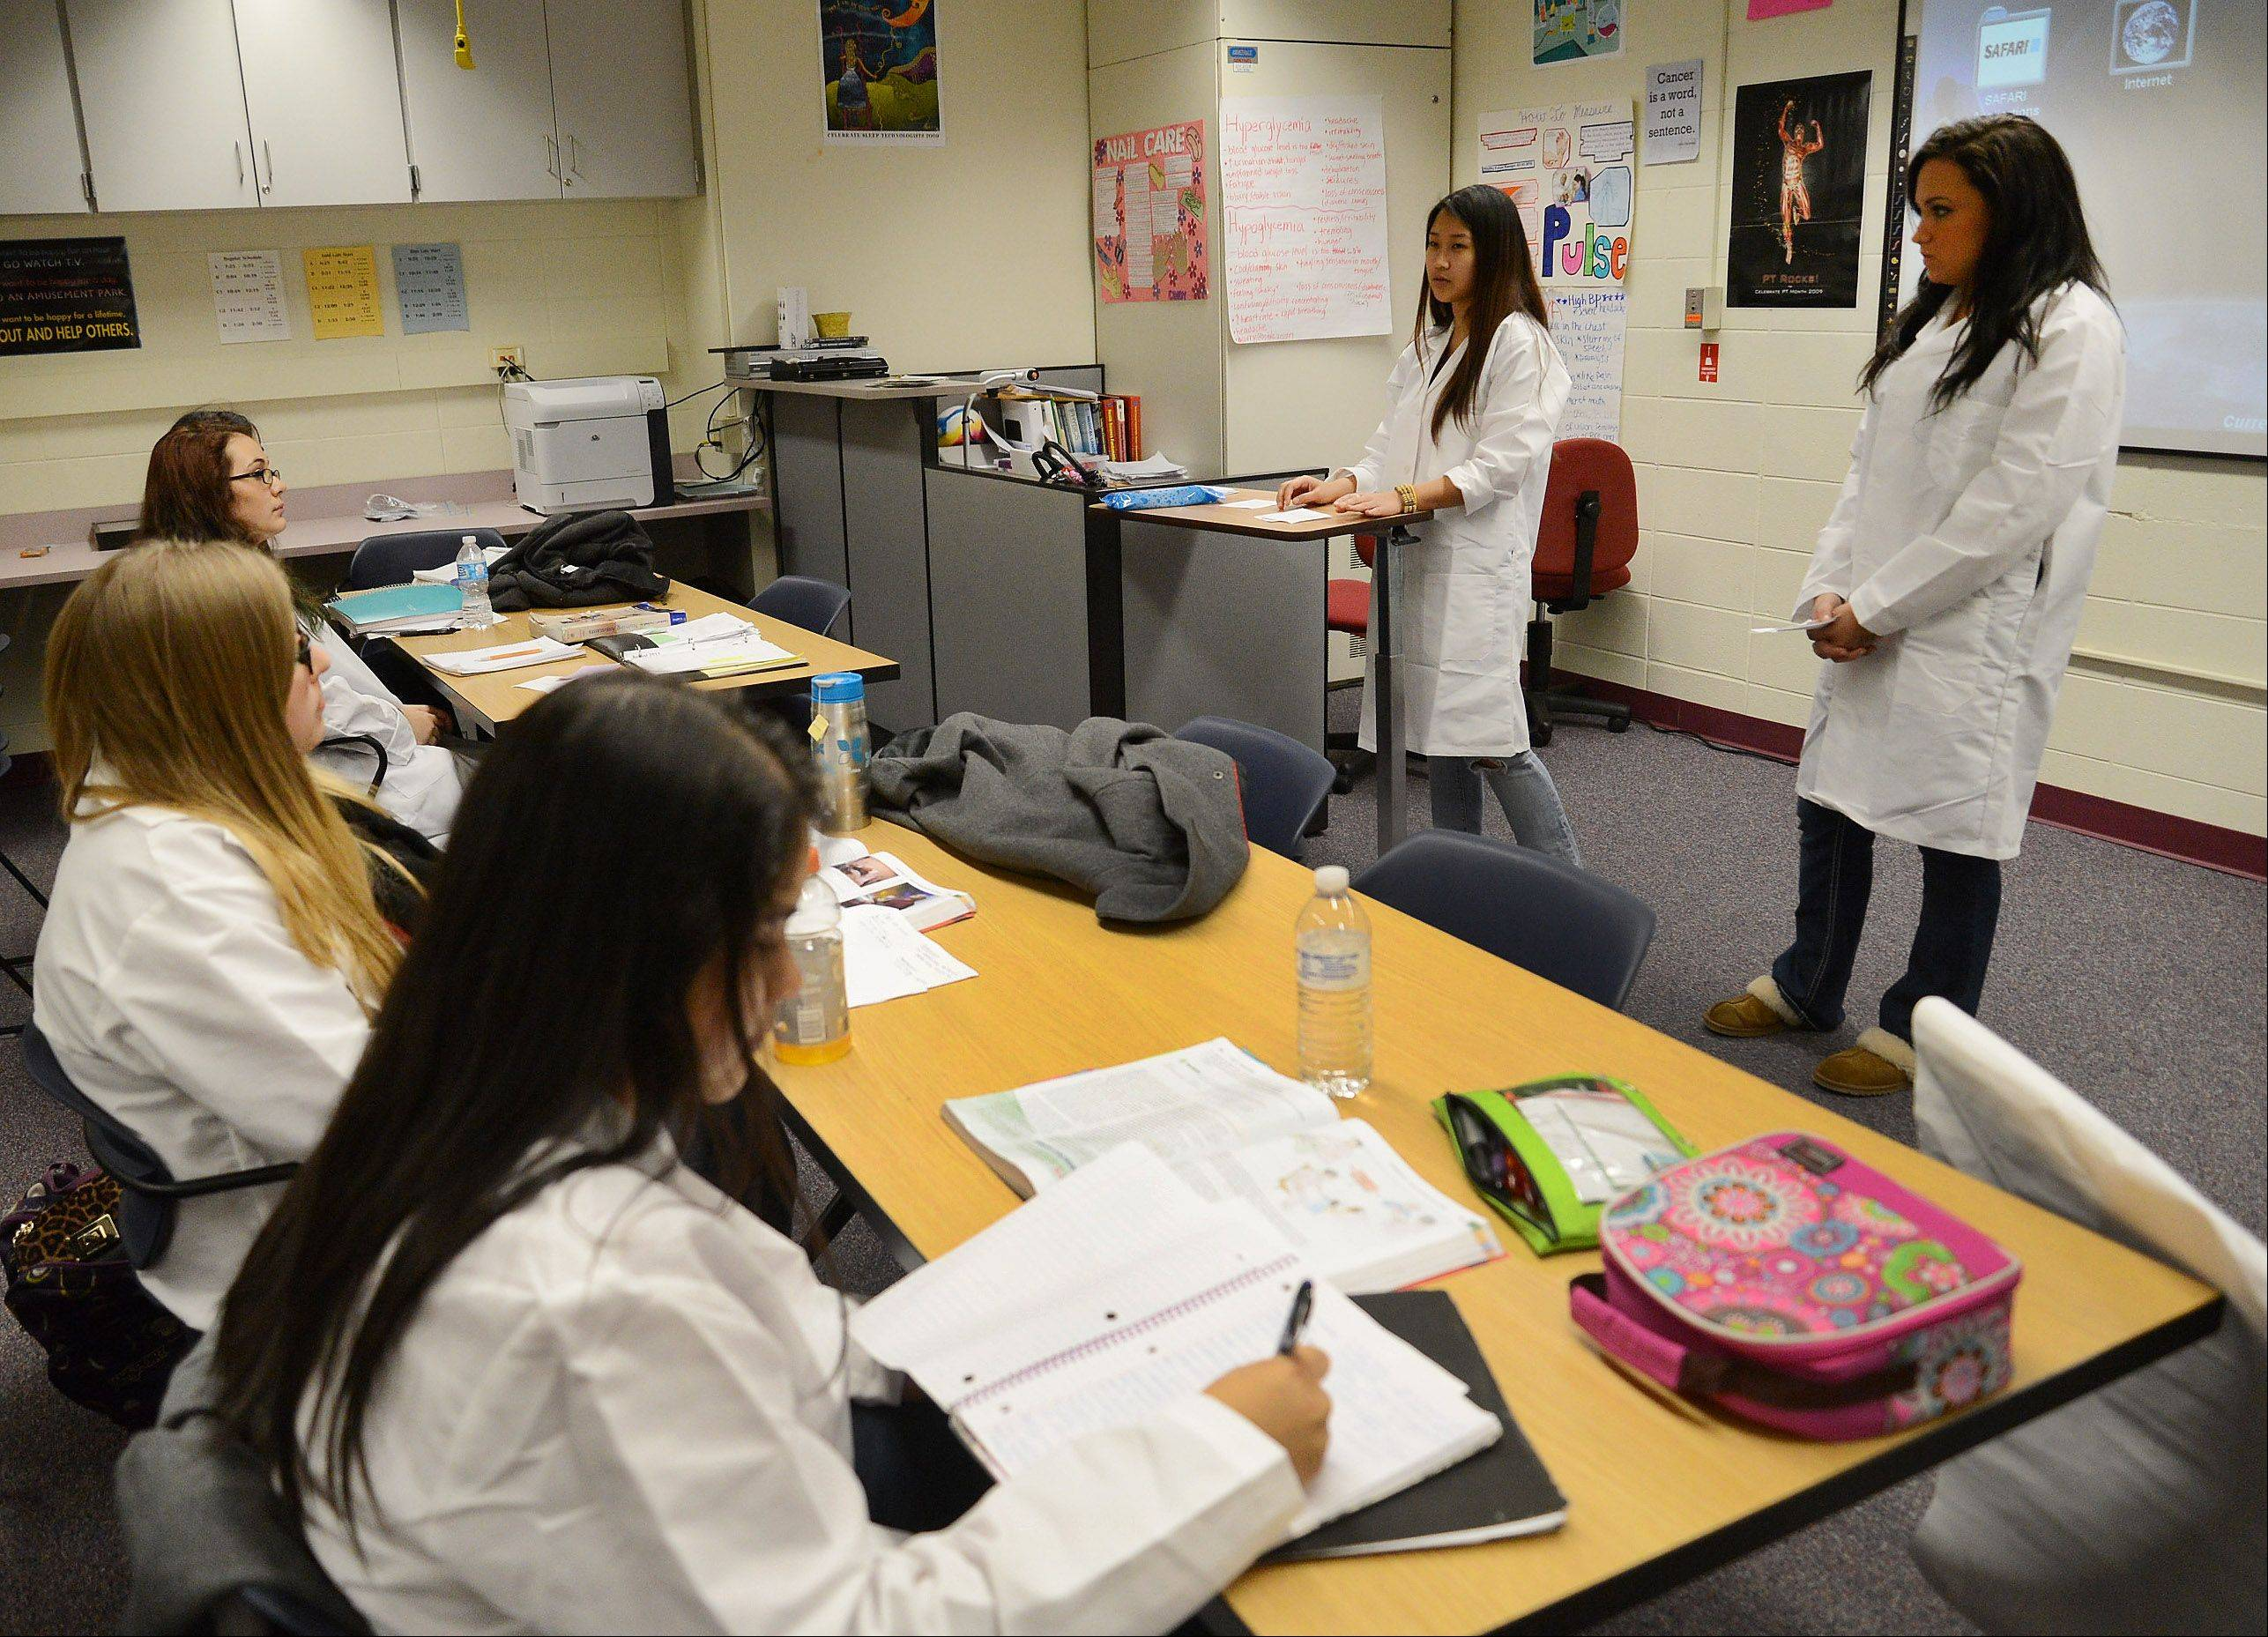 Students conduct presentations in the nursing lab classroom, part of the STEM curriculum at Wheeling High School.